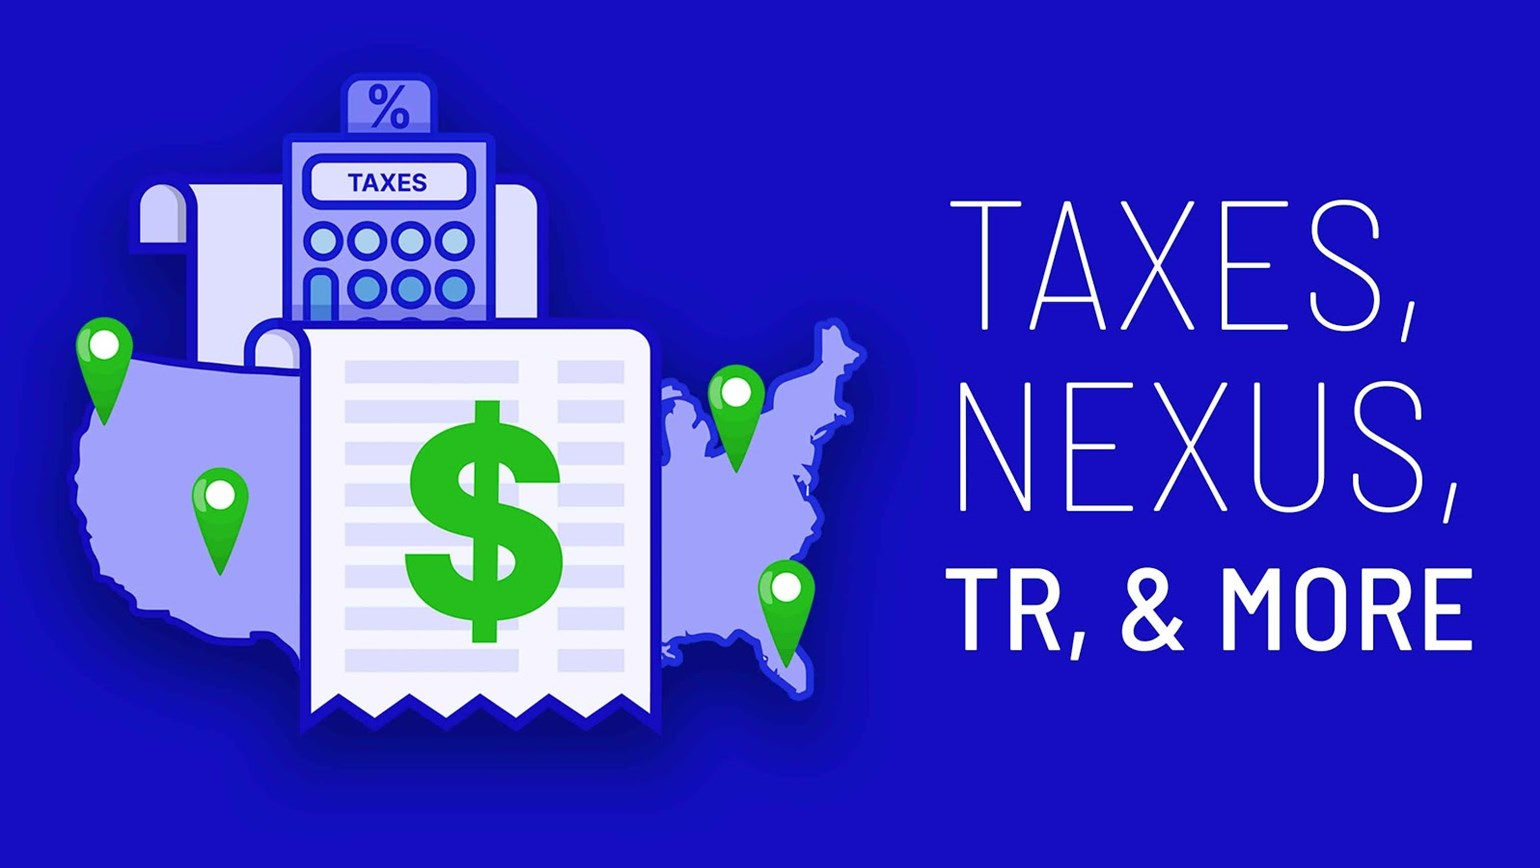 Taxes, Nexus, Thomson Reuters, and More